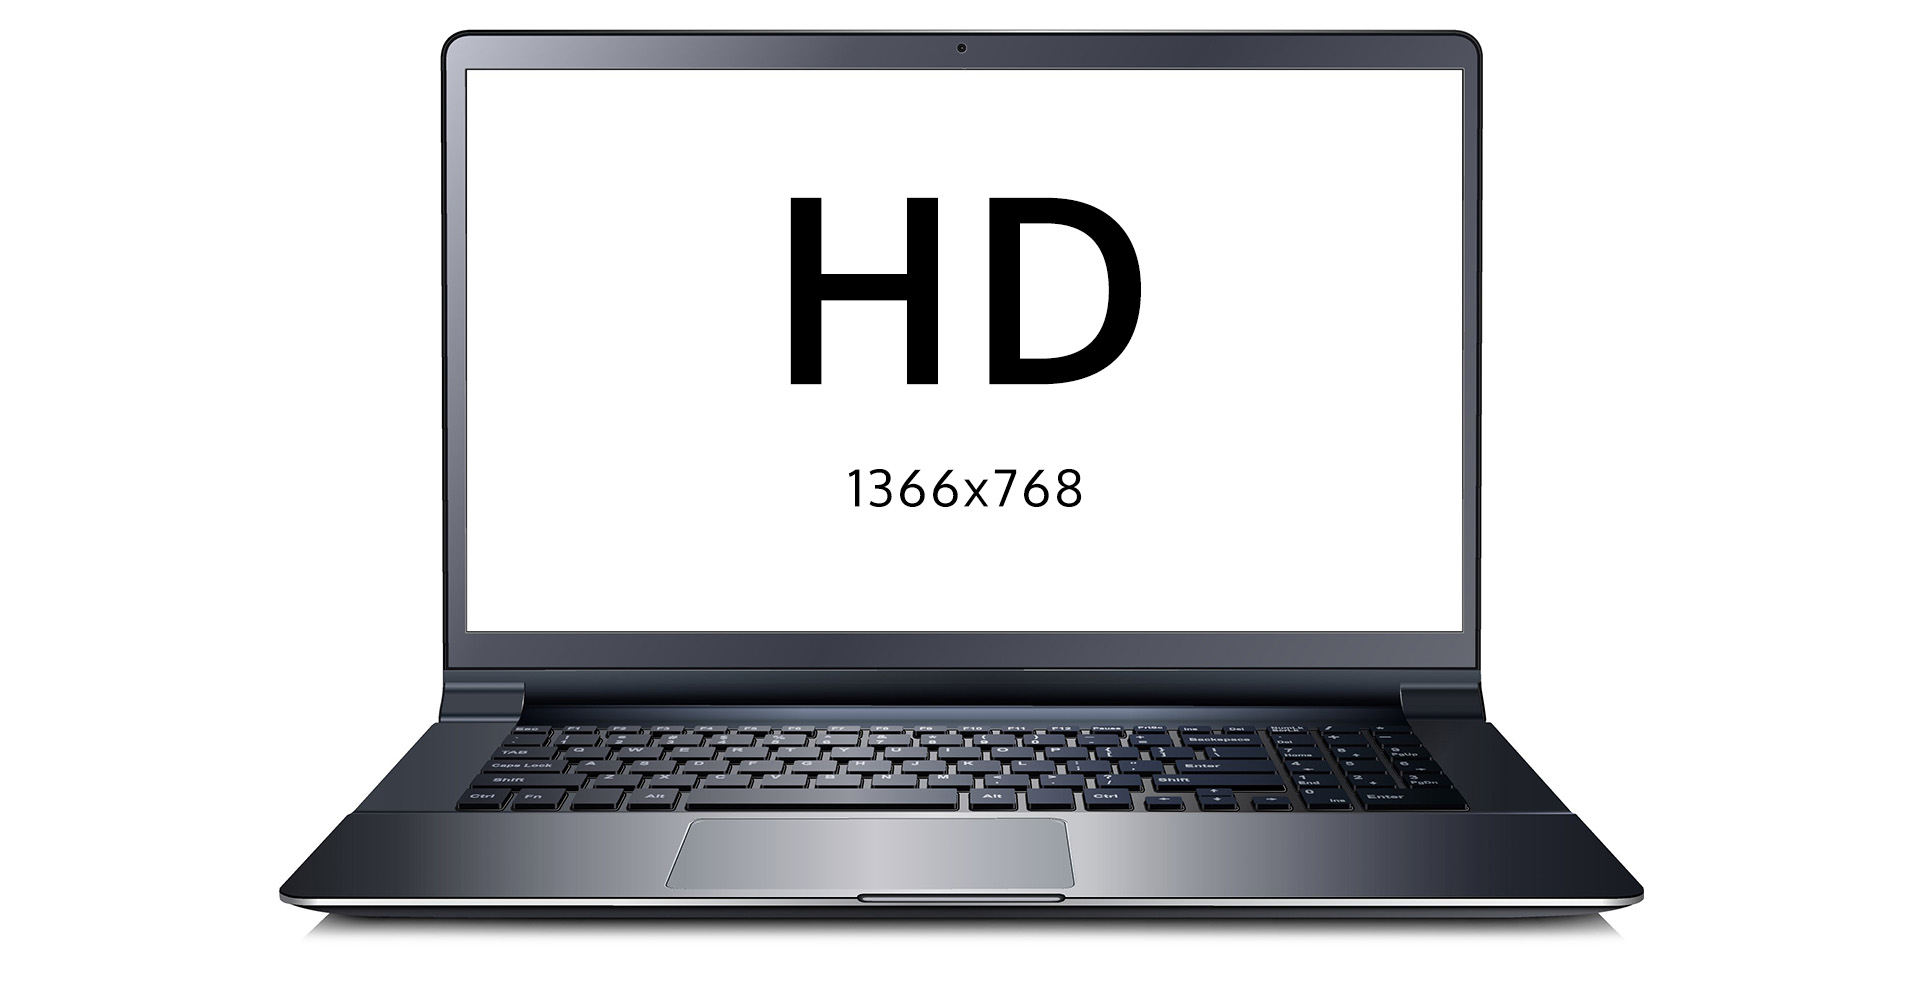 Lenovo IdeaPad 330-15IKB 8 GB 256 GB SSD Win10H [27512687]                             HD 1366x768 resolutsioon